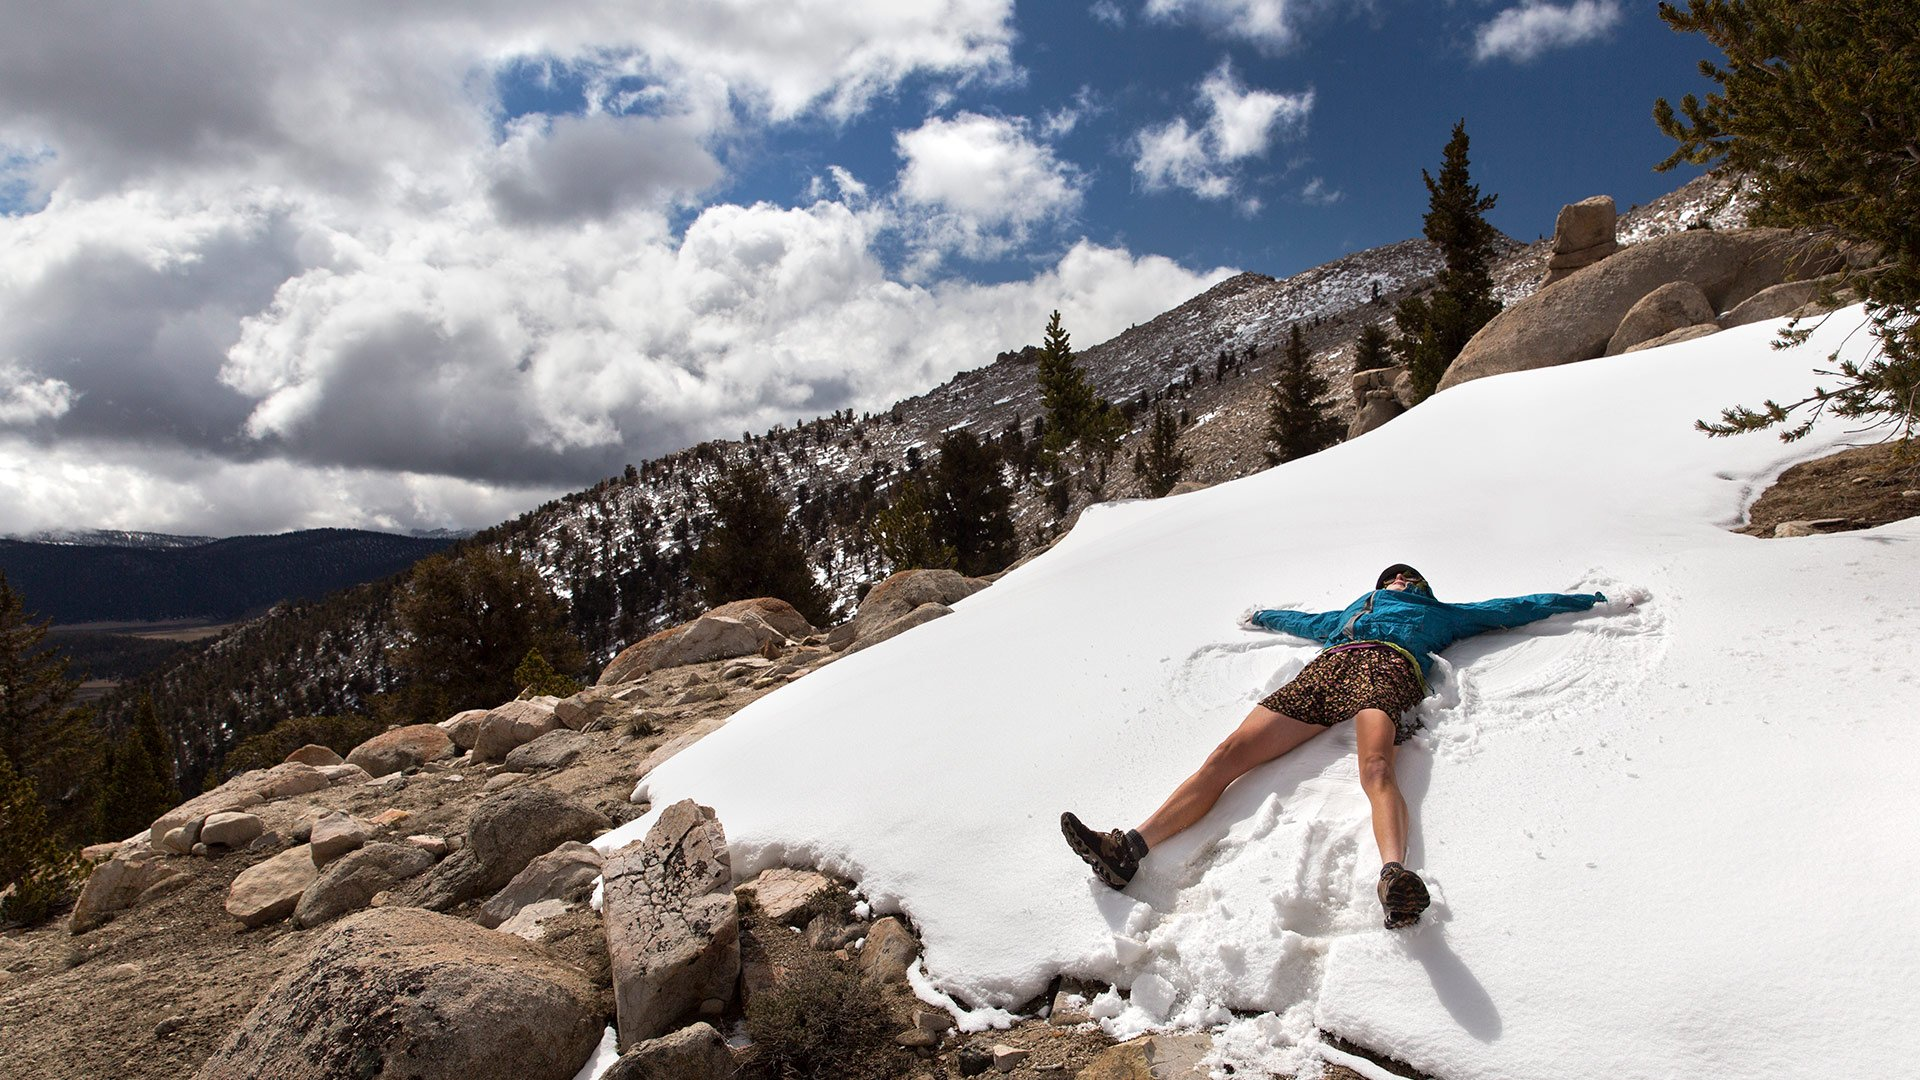 'Dirt Bowl' makes a snow angel in the Sierra on a magical day. Photo by Bri 'Twink' Leahy